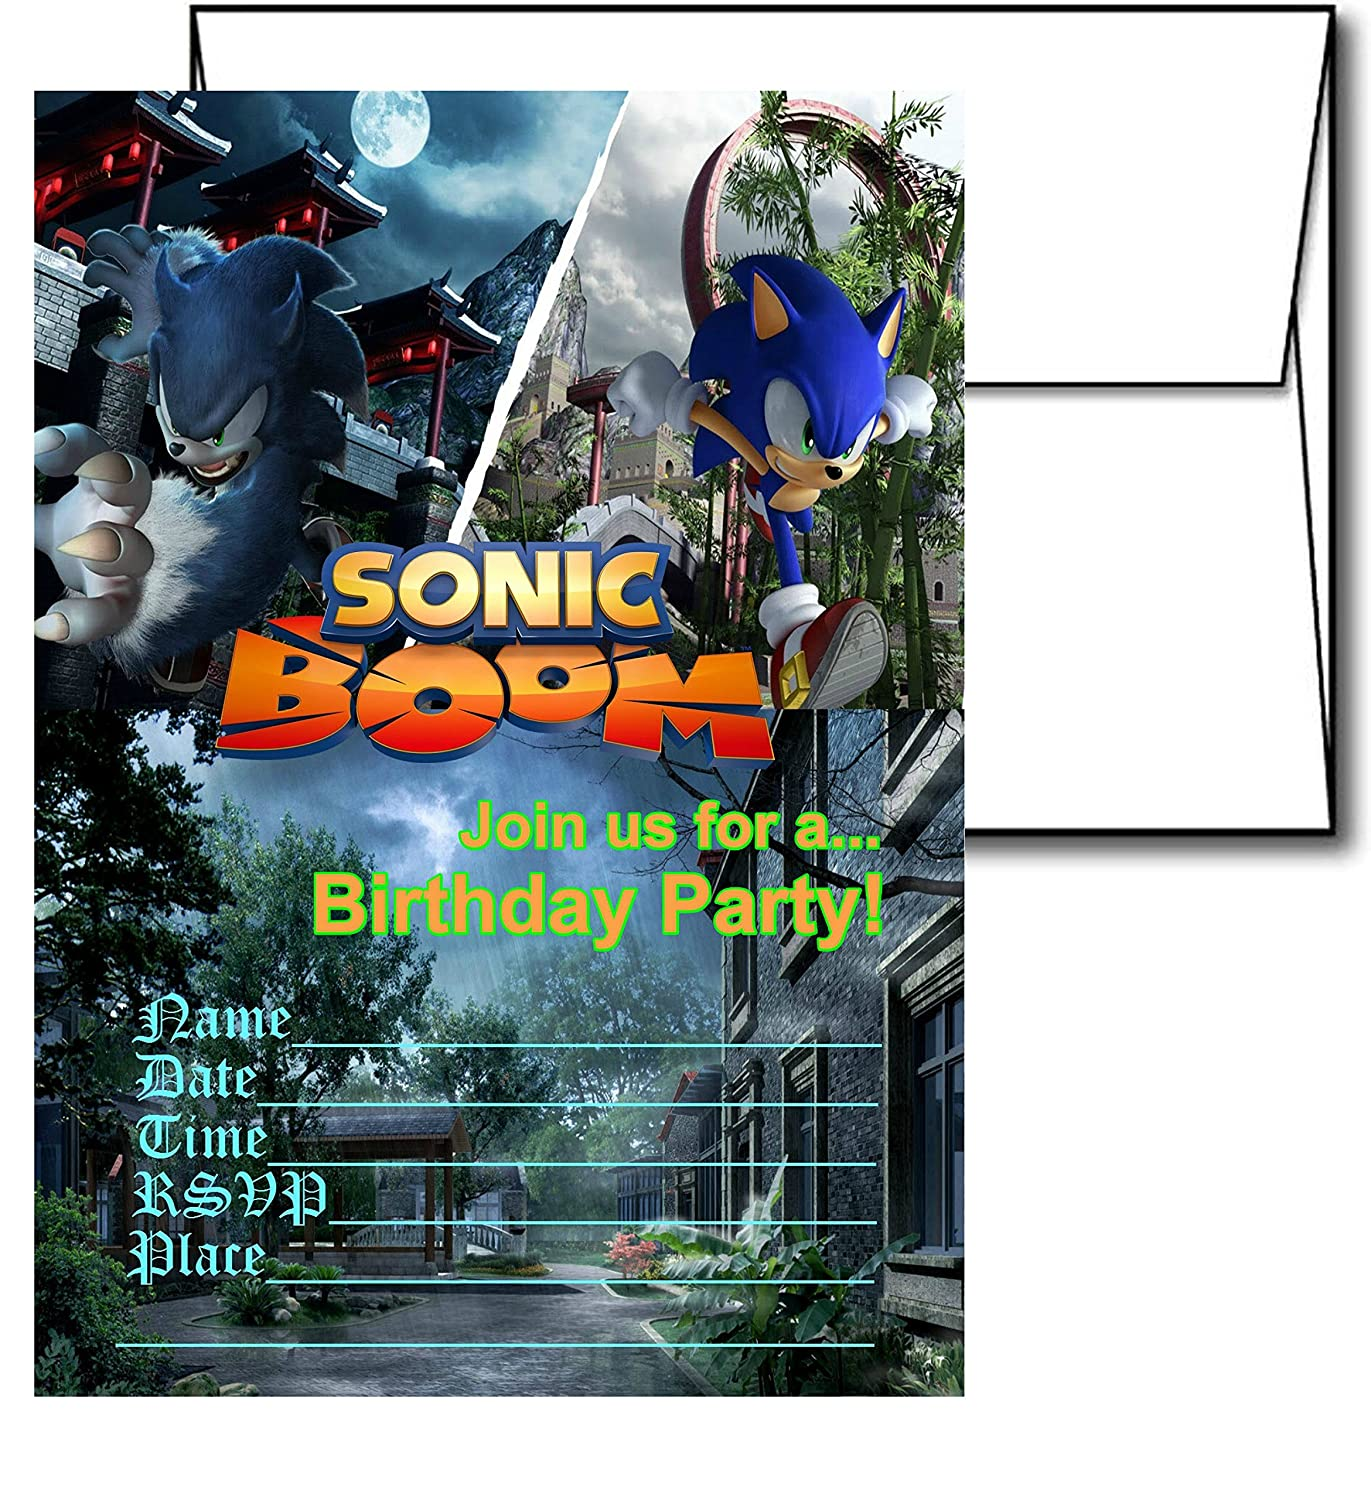 12 Sonic The Hedgehog Birthday Invitation Cards 12 White Envelops Included